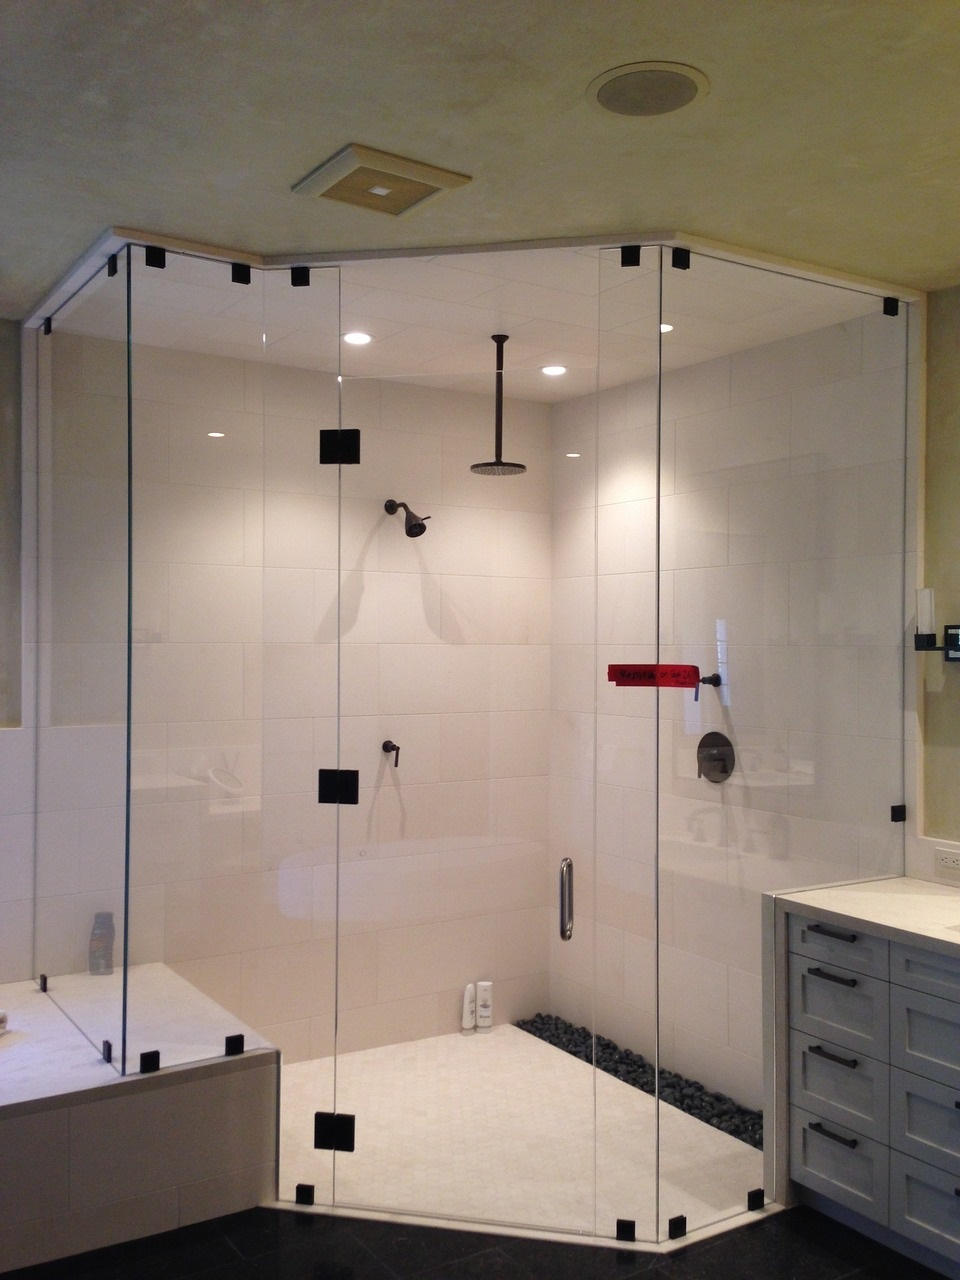 Shower Enclosure Maker Opening New Plant, Creating 65 New Jobs in ...